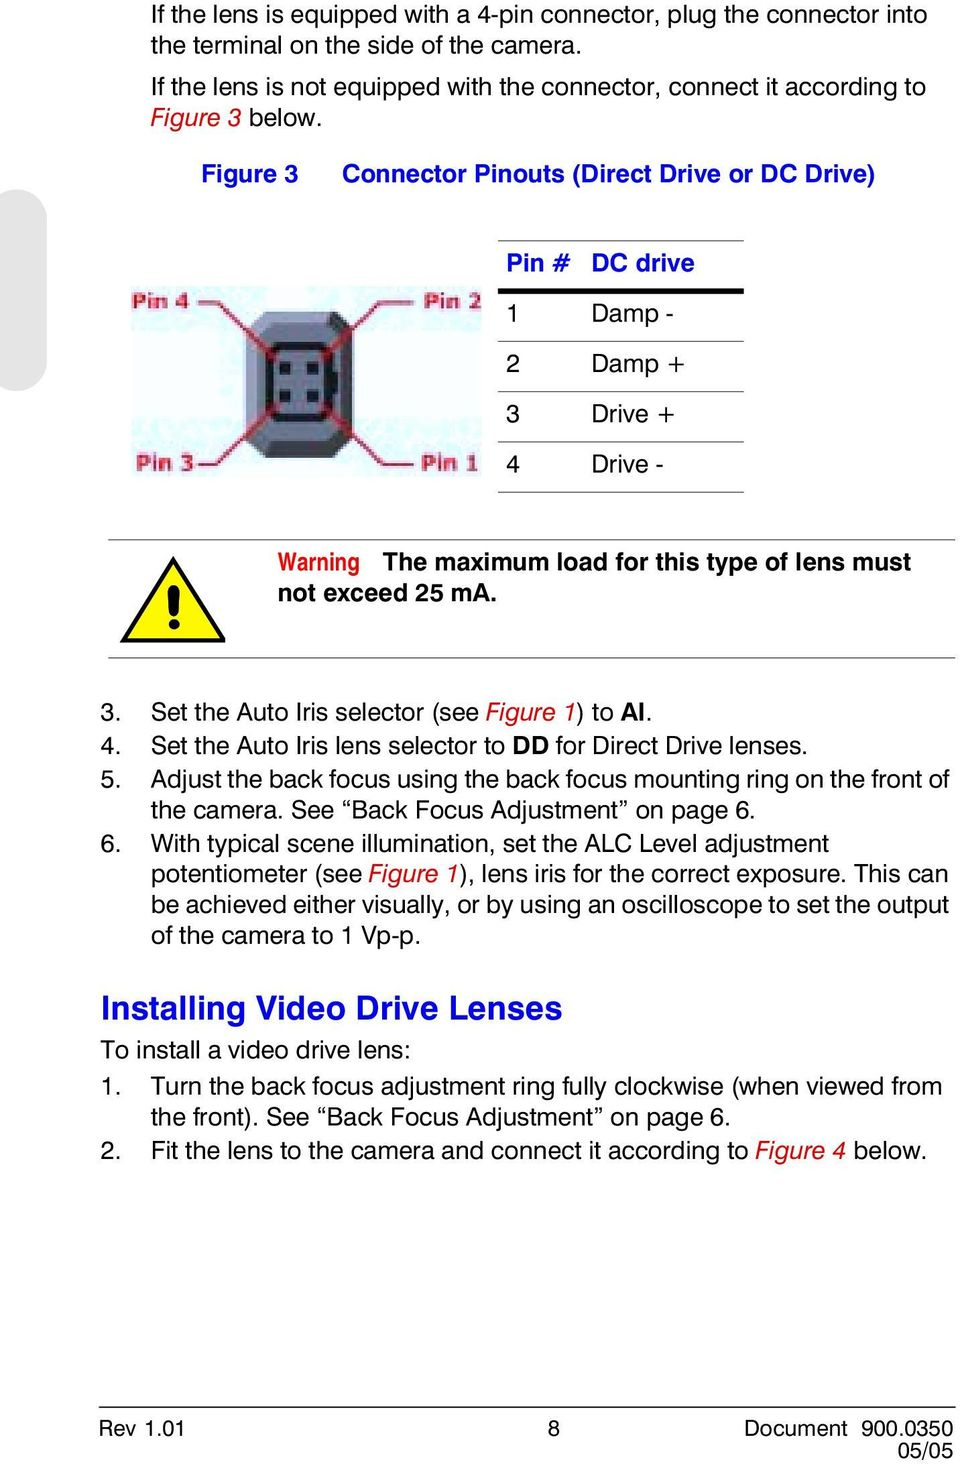 4. Set the Auto Iris lens selector to DD for Direct Drive lenses. 5. Adjust the back focus using the back focus mounting ring on the front of the camera. See Back Focus Adjustment on page 6.